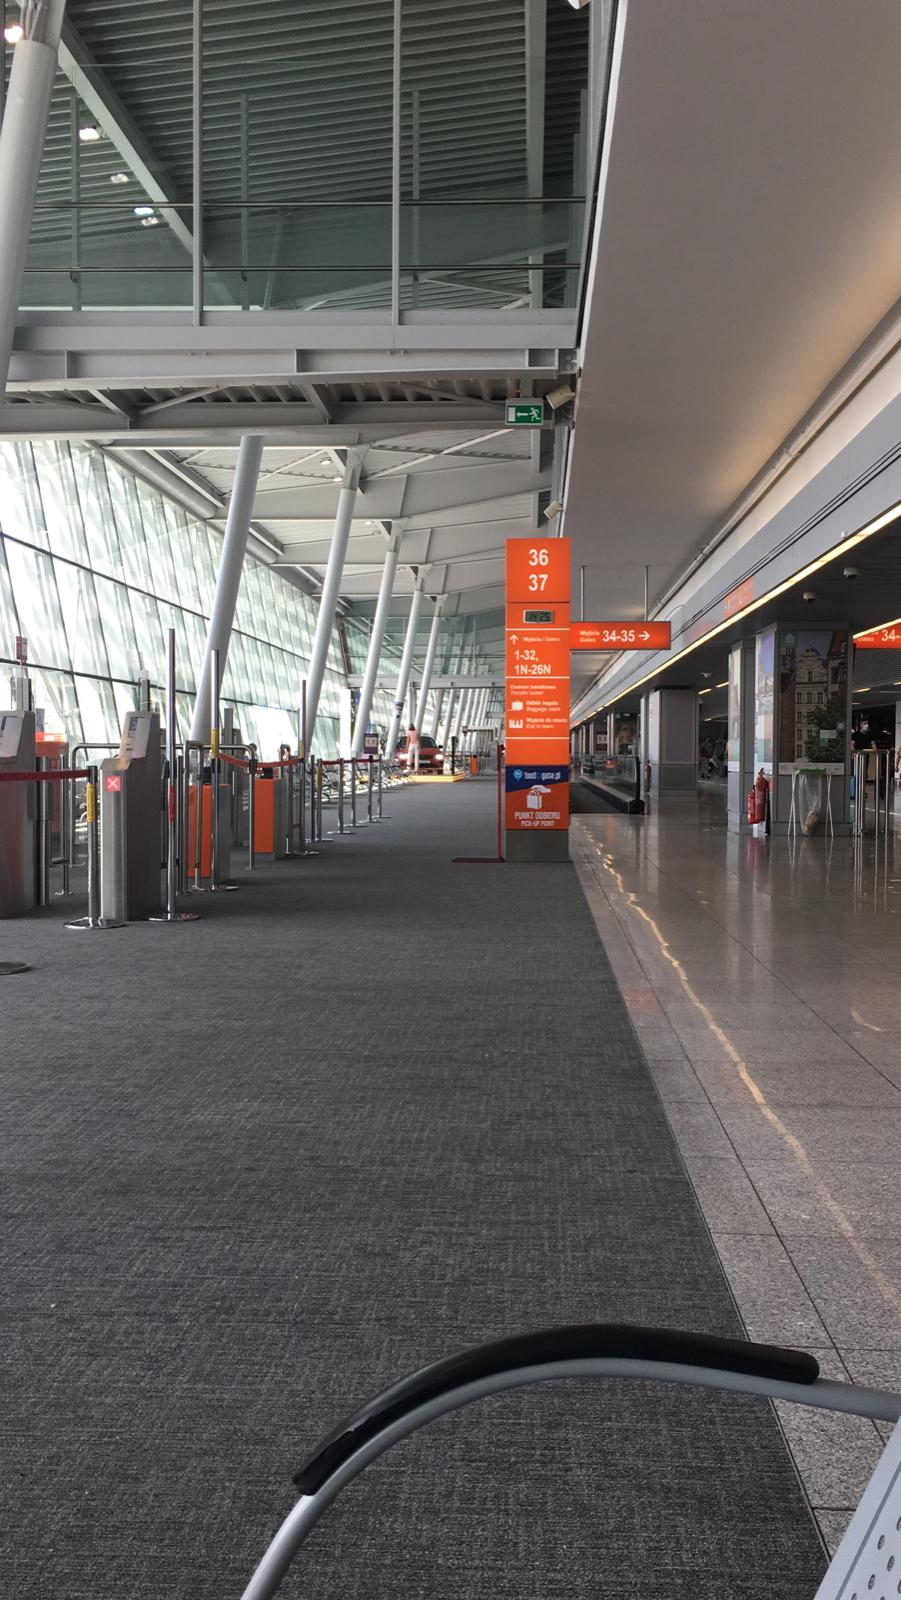 warsaw chopin airport interior, gate 36 is completely empty during the coronavirus pandemic. Flights resumed, no people in terminal building.